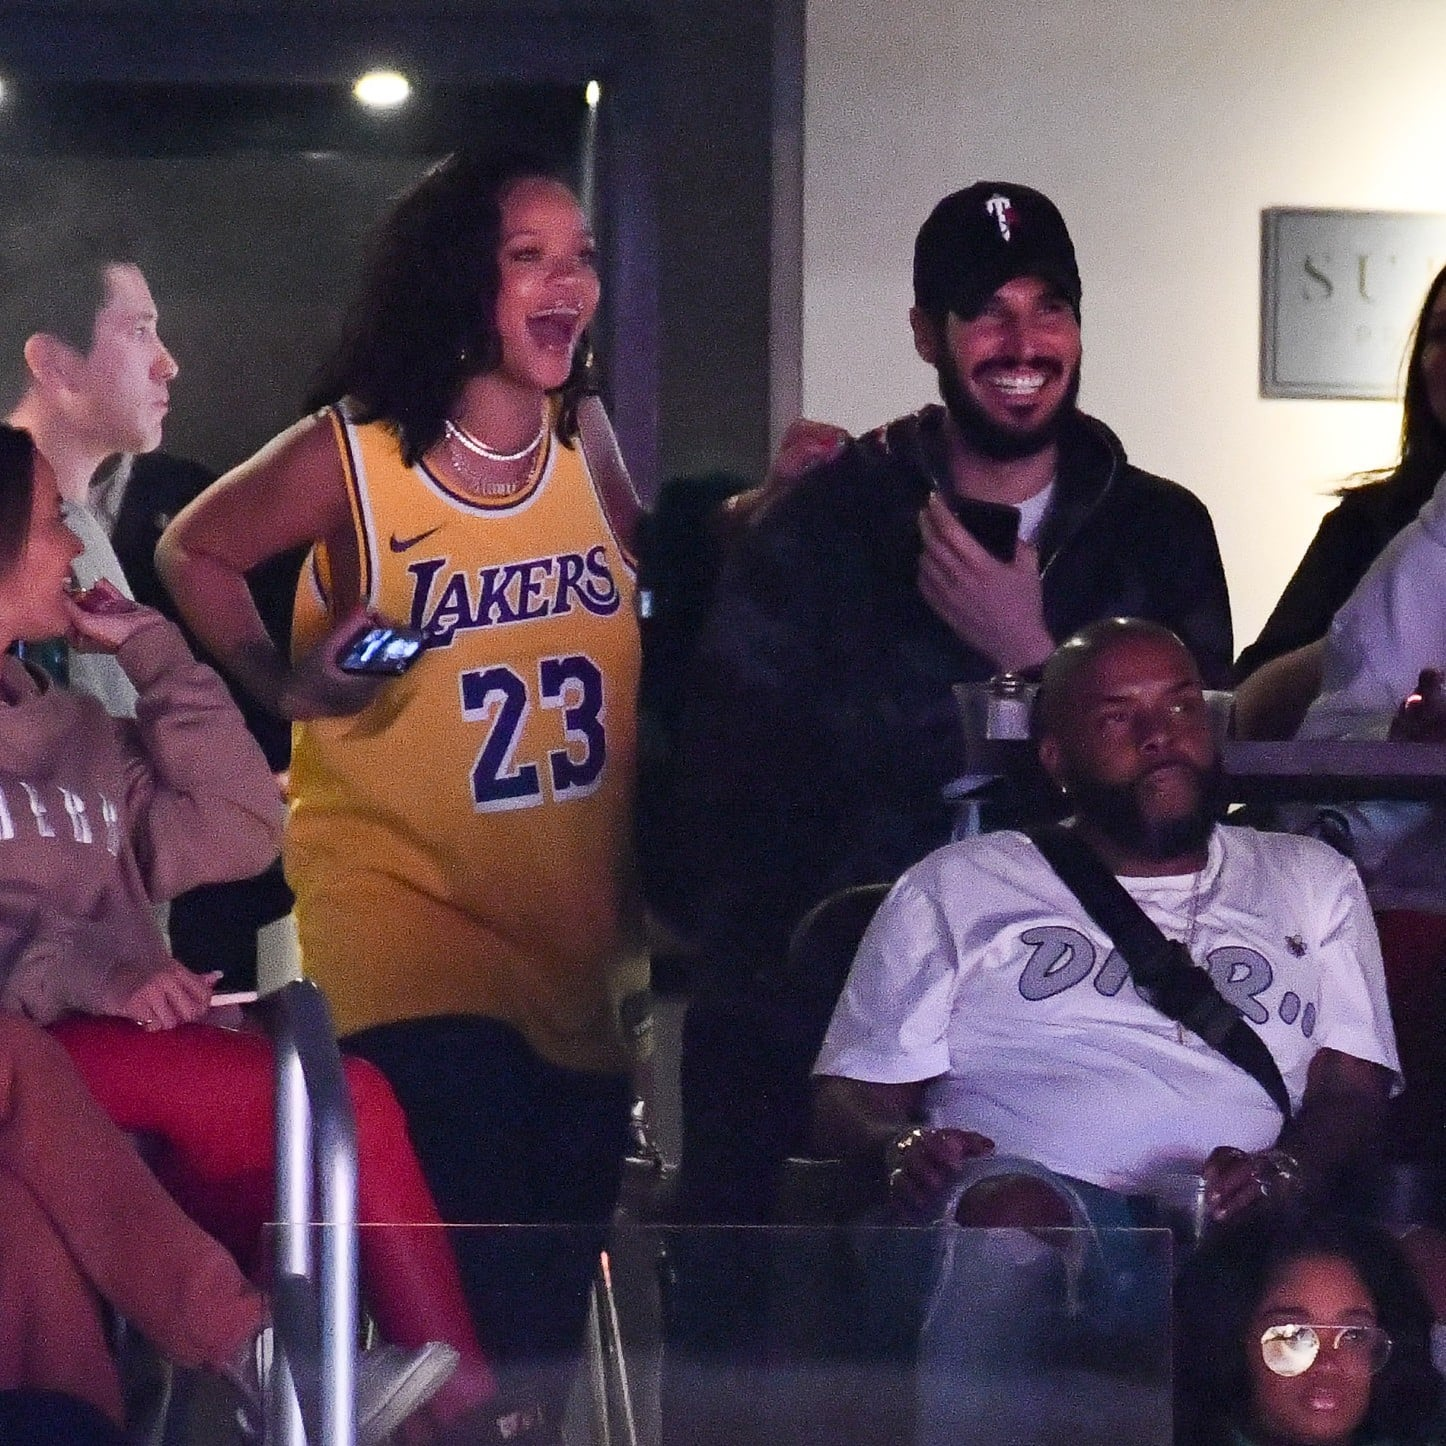 Rihanna And Hassan Jameel At Lakers Game February 2019 Popsugar Celebrity